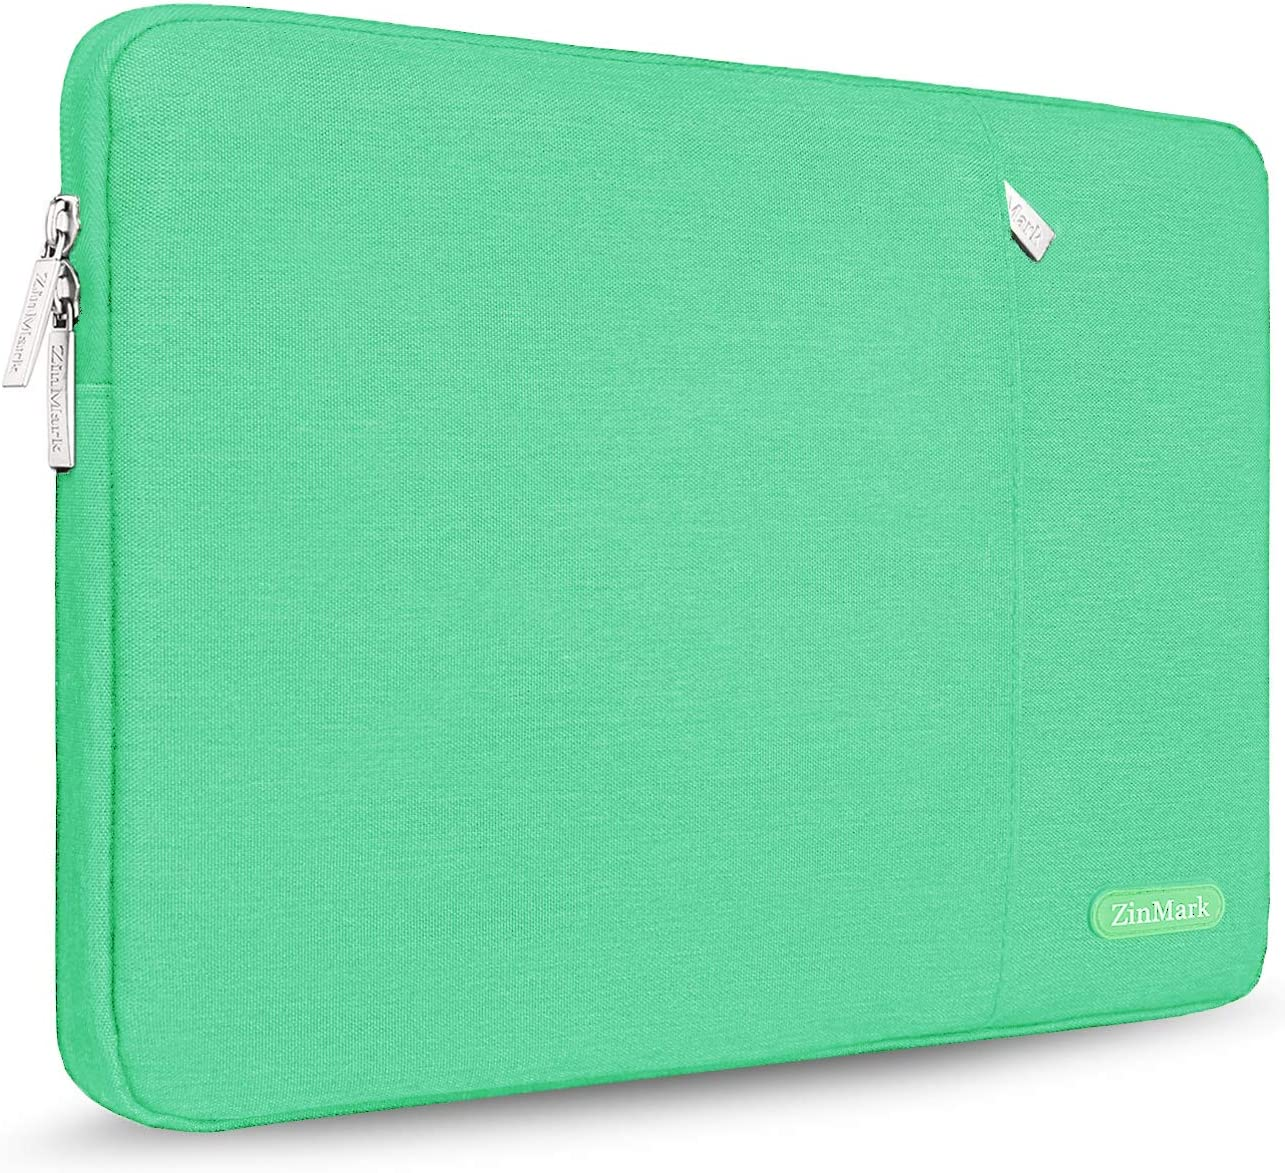 ZinMark Outlet ☆ Free Shipping Laptop Sleeve 13 Inch Compatible 2019 1 Air 2018 MacBook Los Angeles Mall